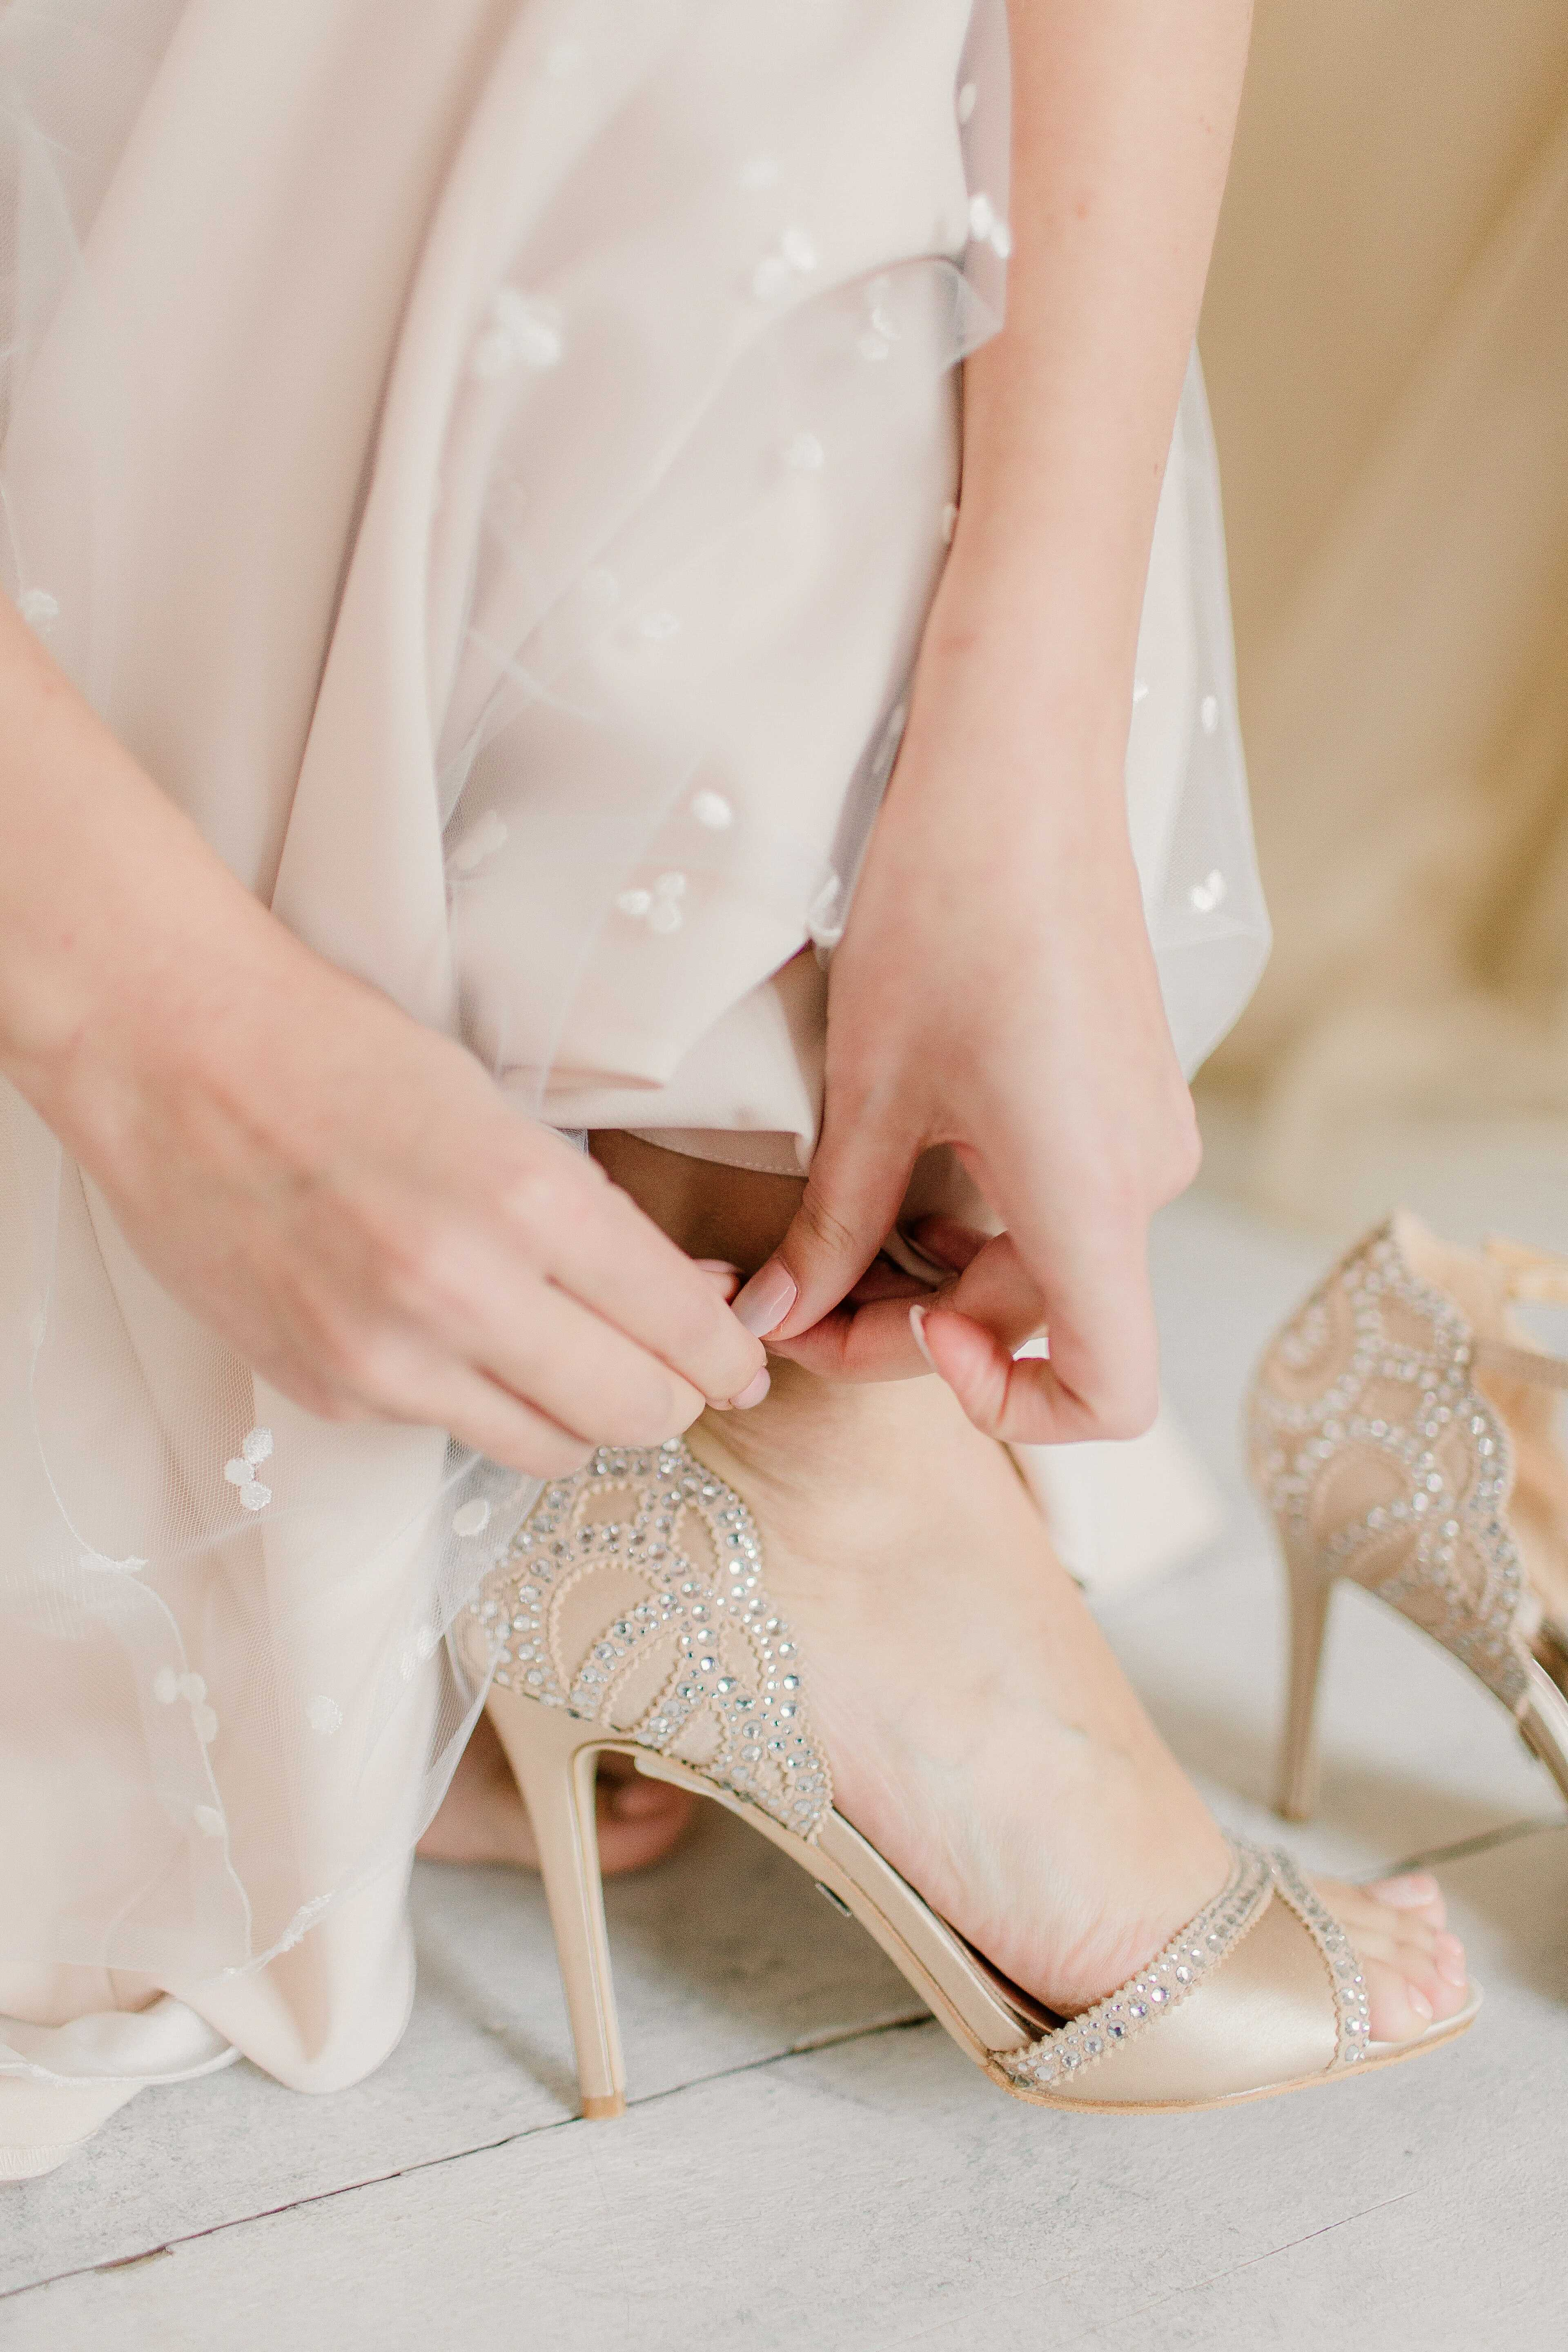 a woman is tightening her heel strap